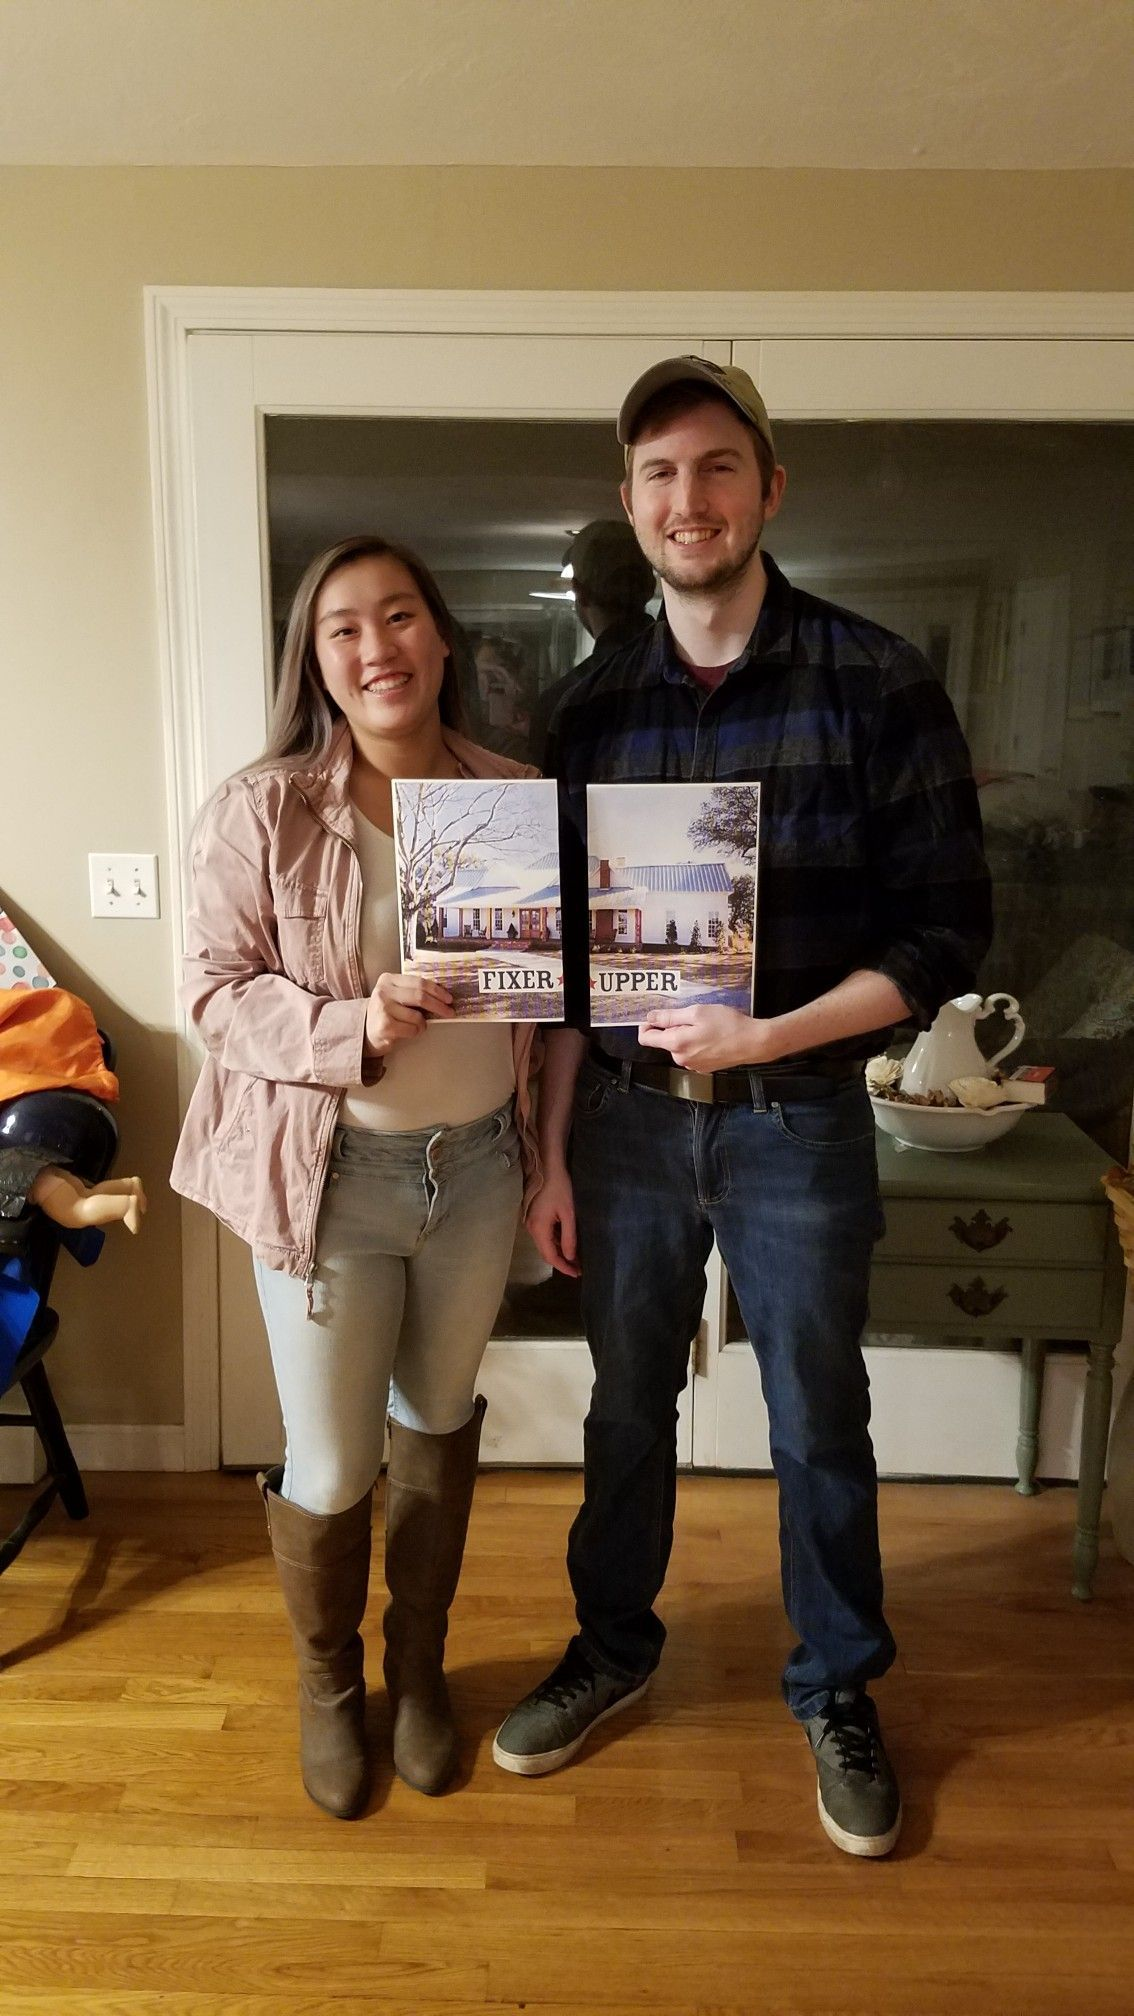 Chip and Joanna Gaines costume  #chipandjoannagainescostume #chipandjoannagainescostume